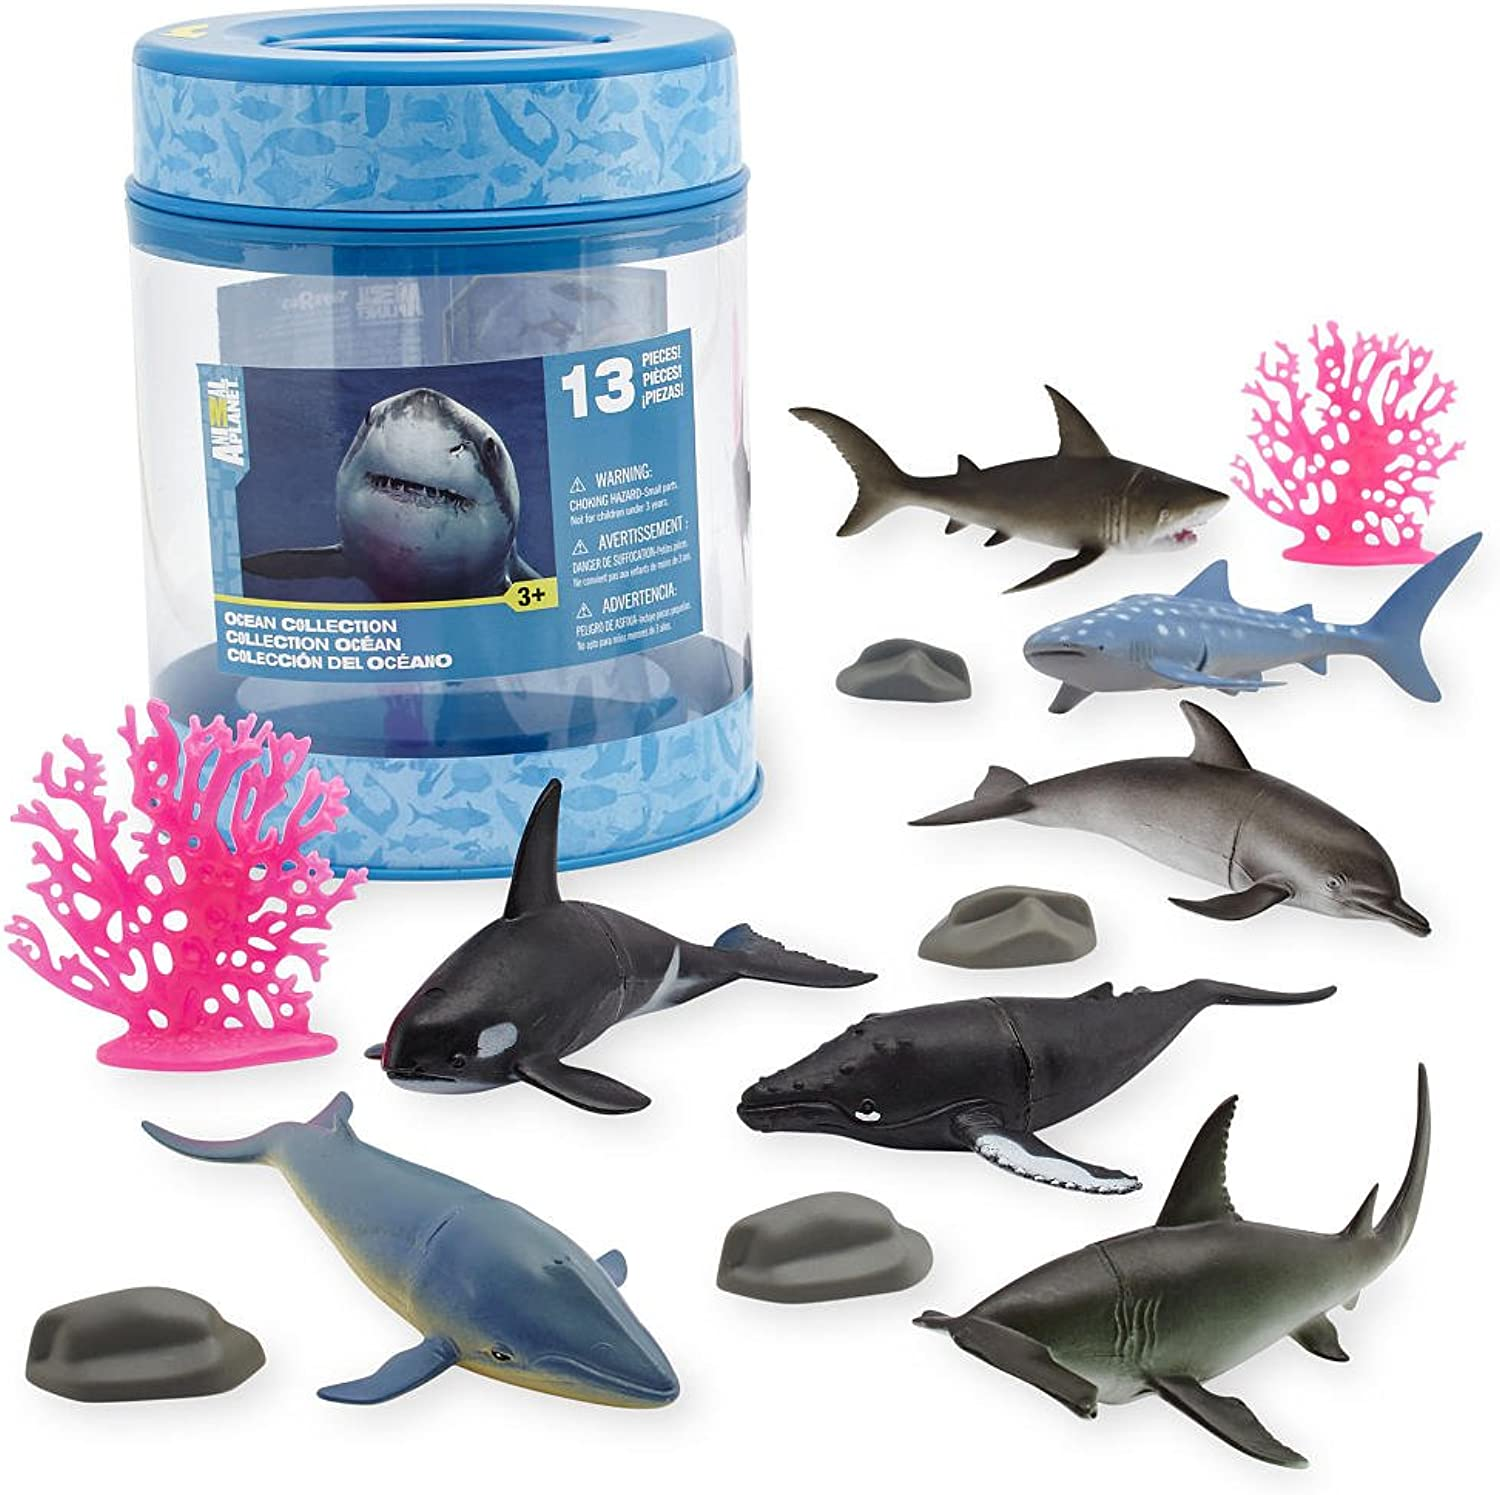 Animal Planet Ocean Collection by Toys R Us